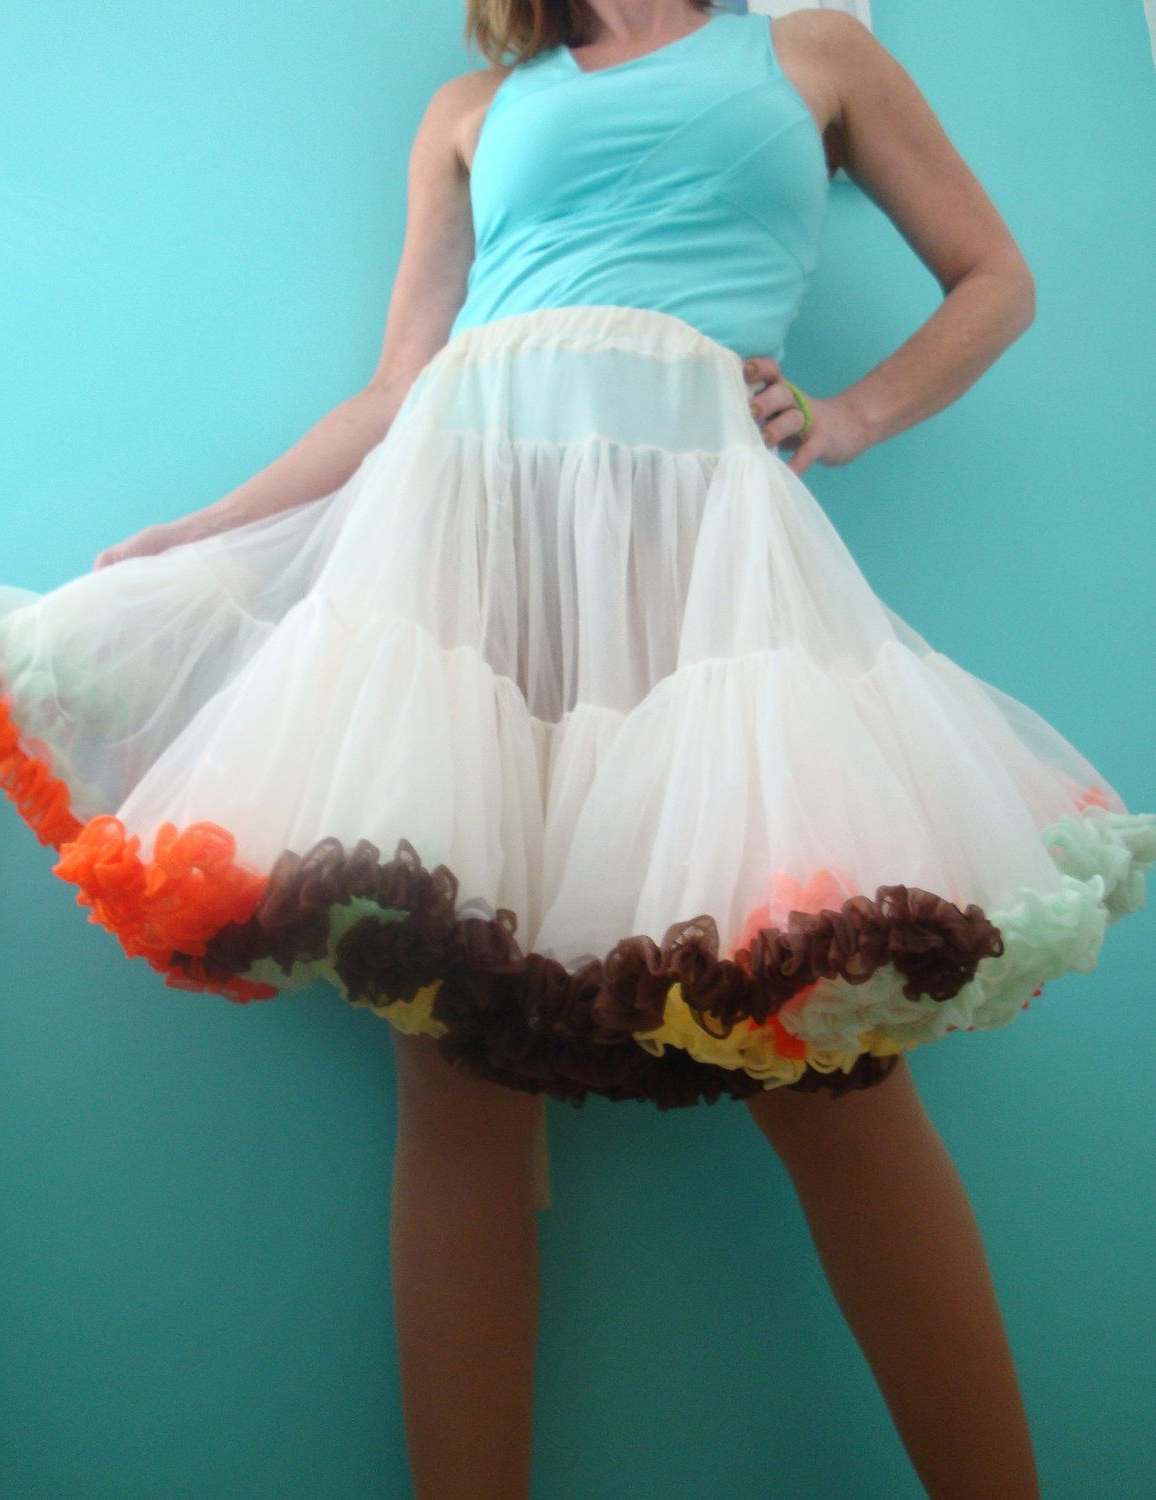 2021 White Ruffled Sheer Petticoat Tier Pairs With Regard To Pin On Petticoats (View 15 of 20)